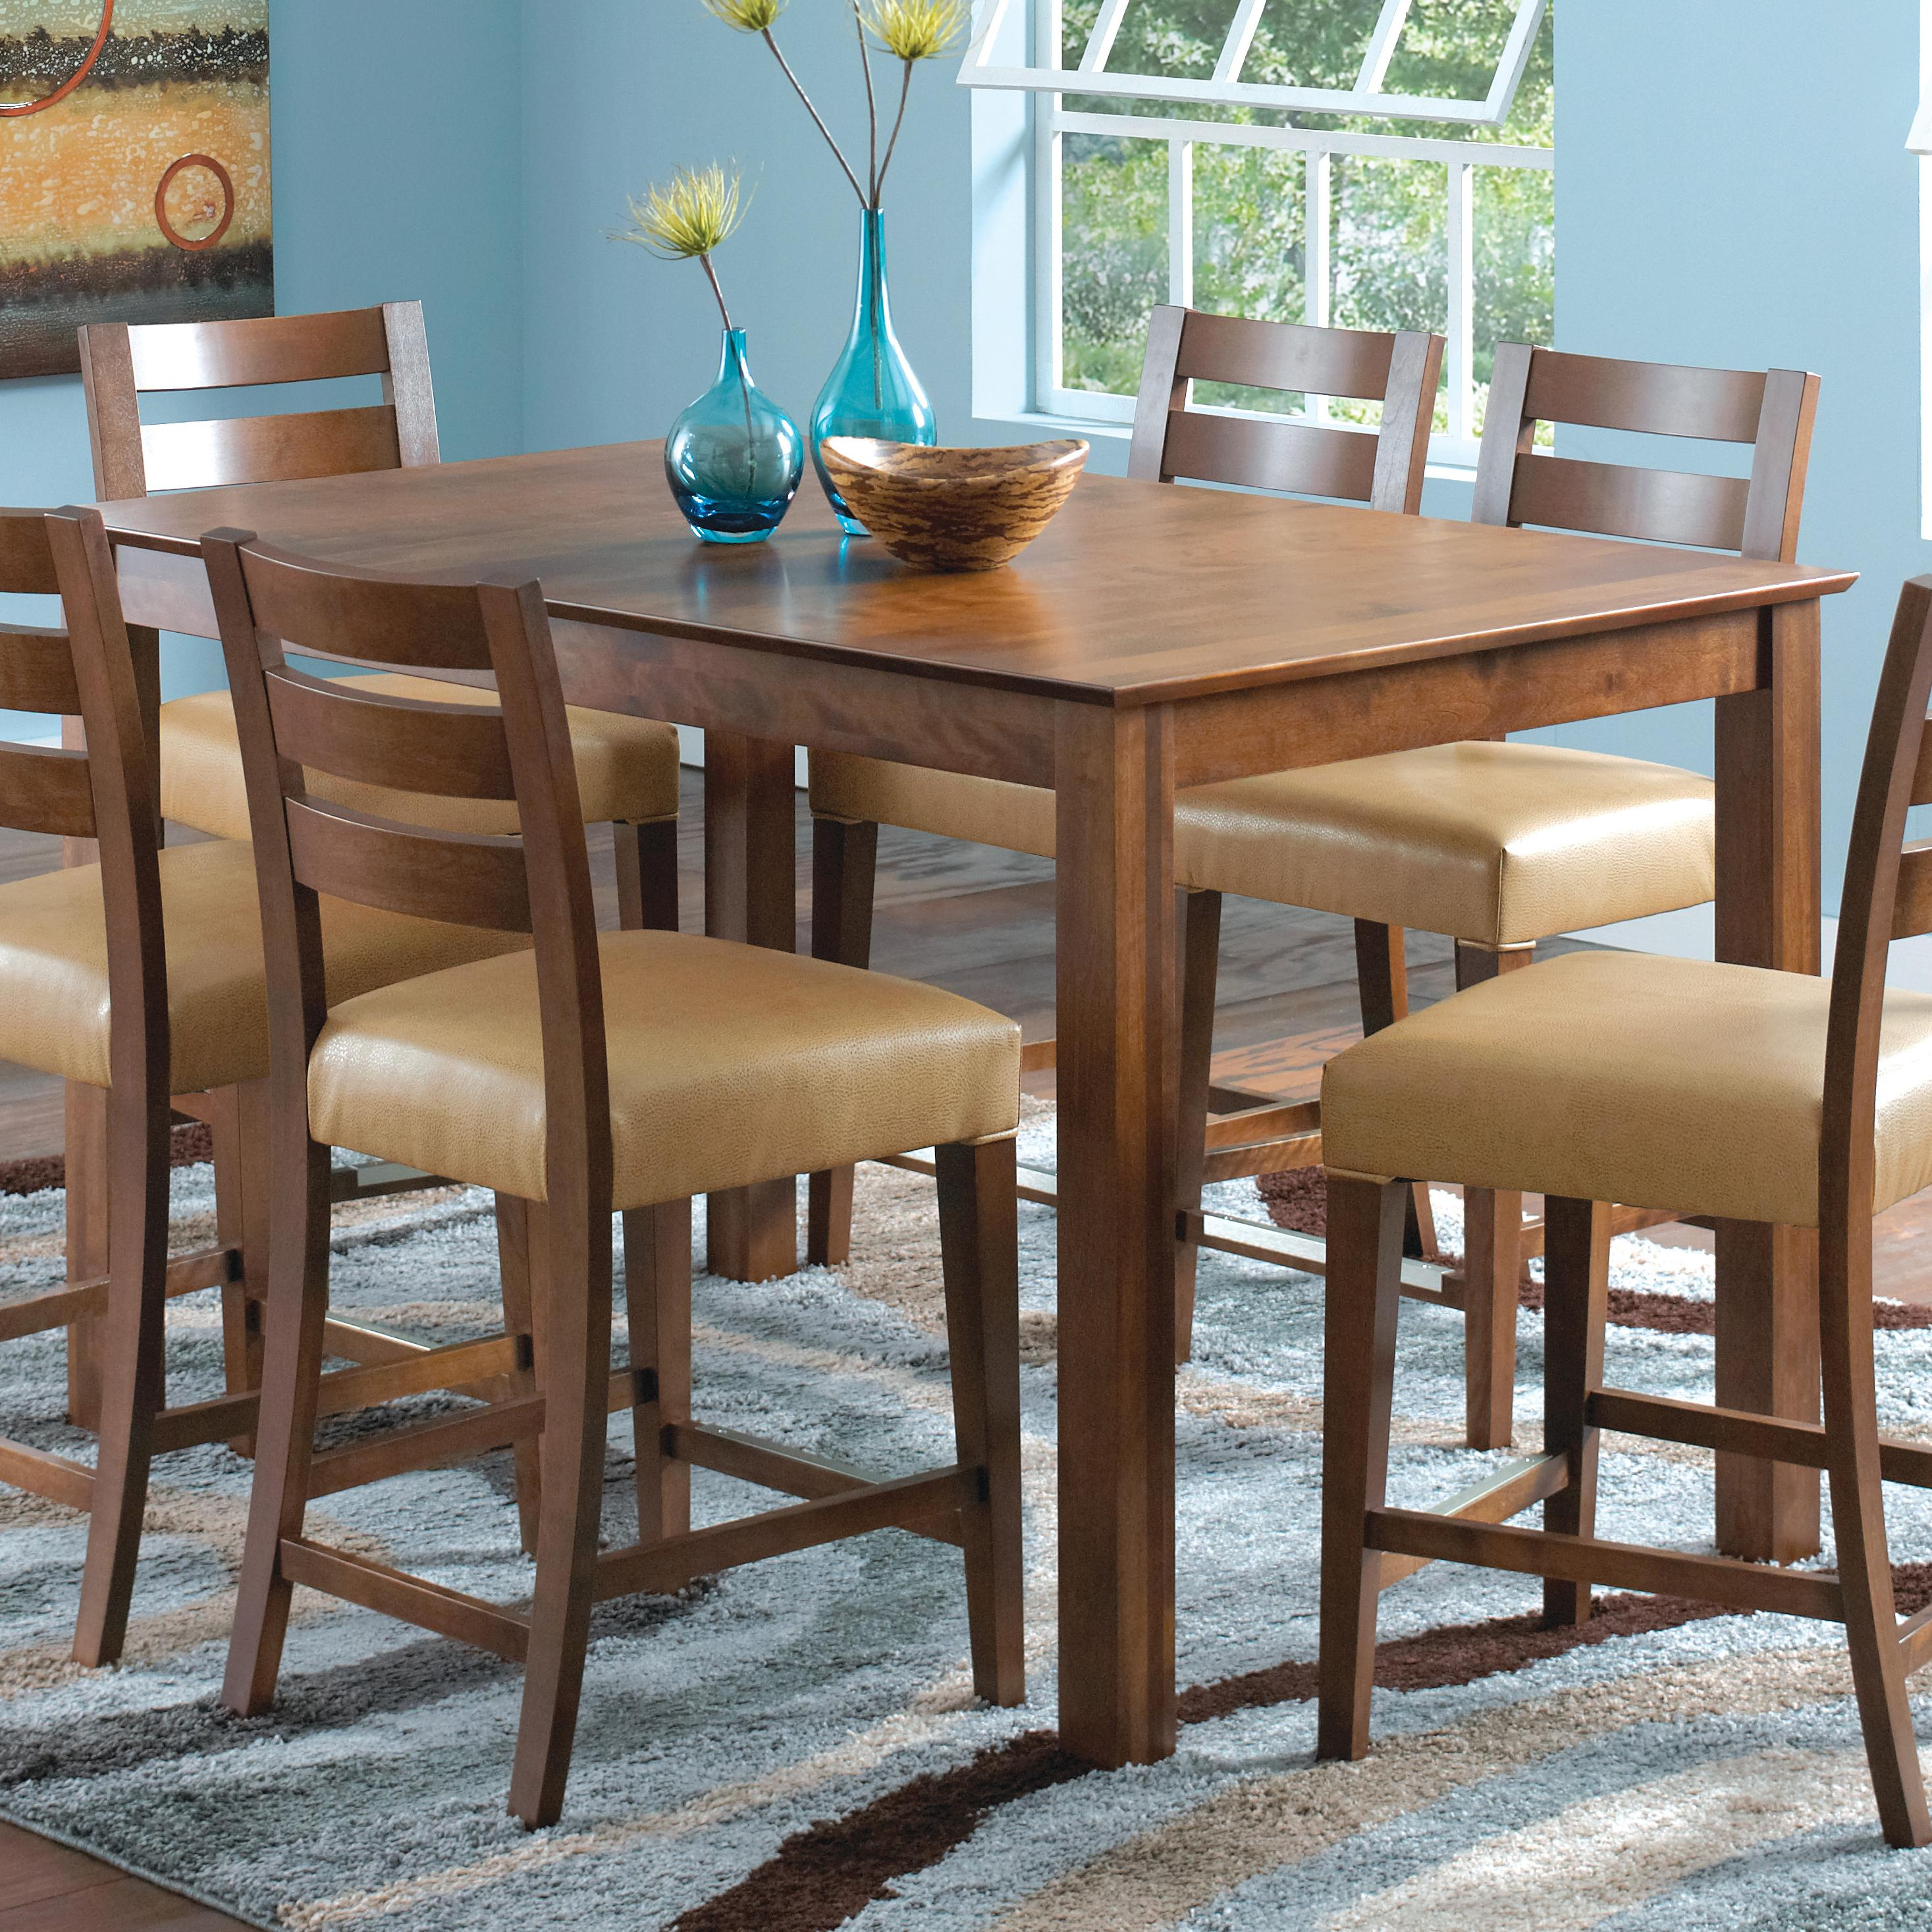 High Dining Room Table And Chairs: High Dining Customizable Counter